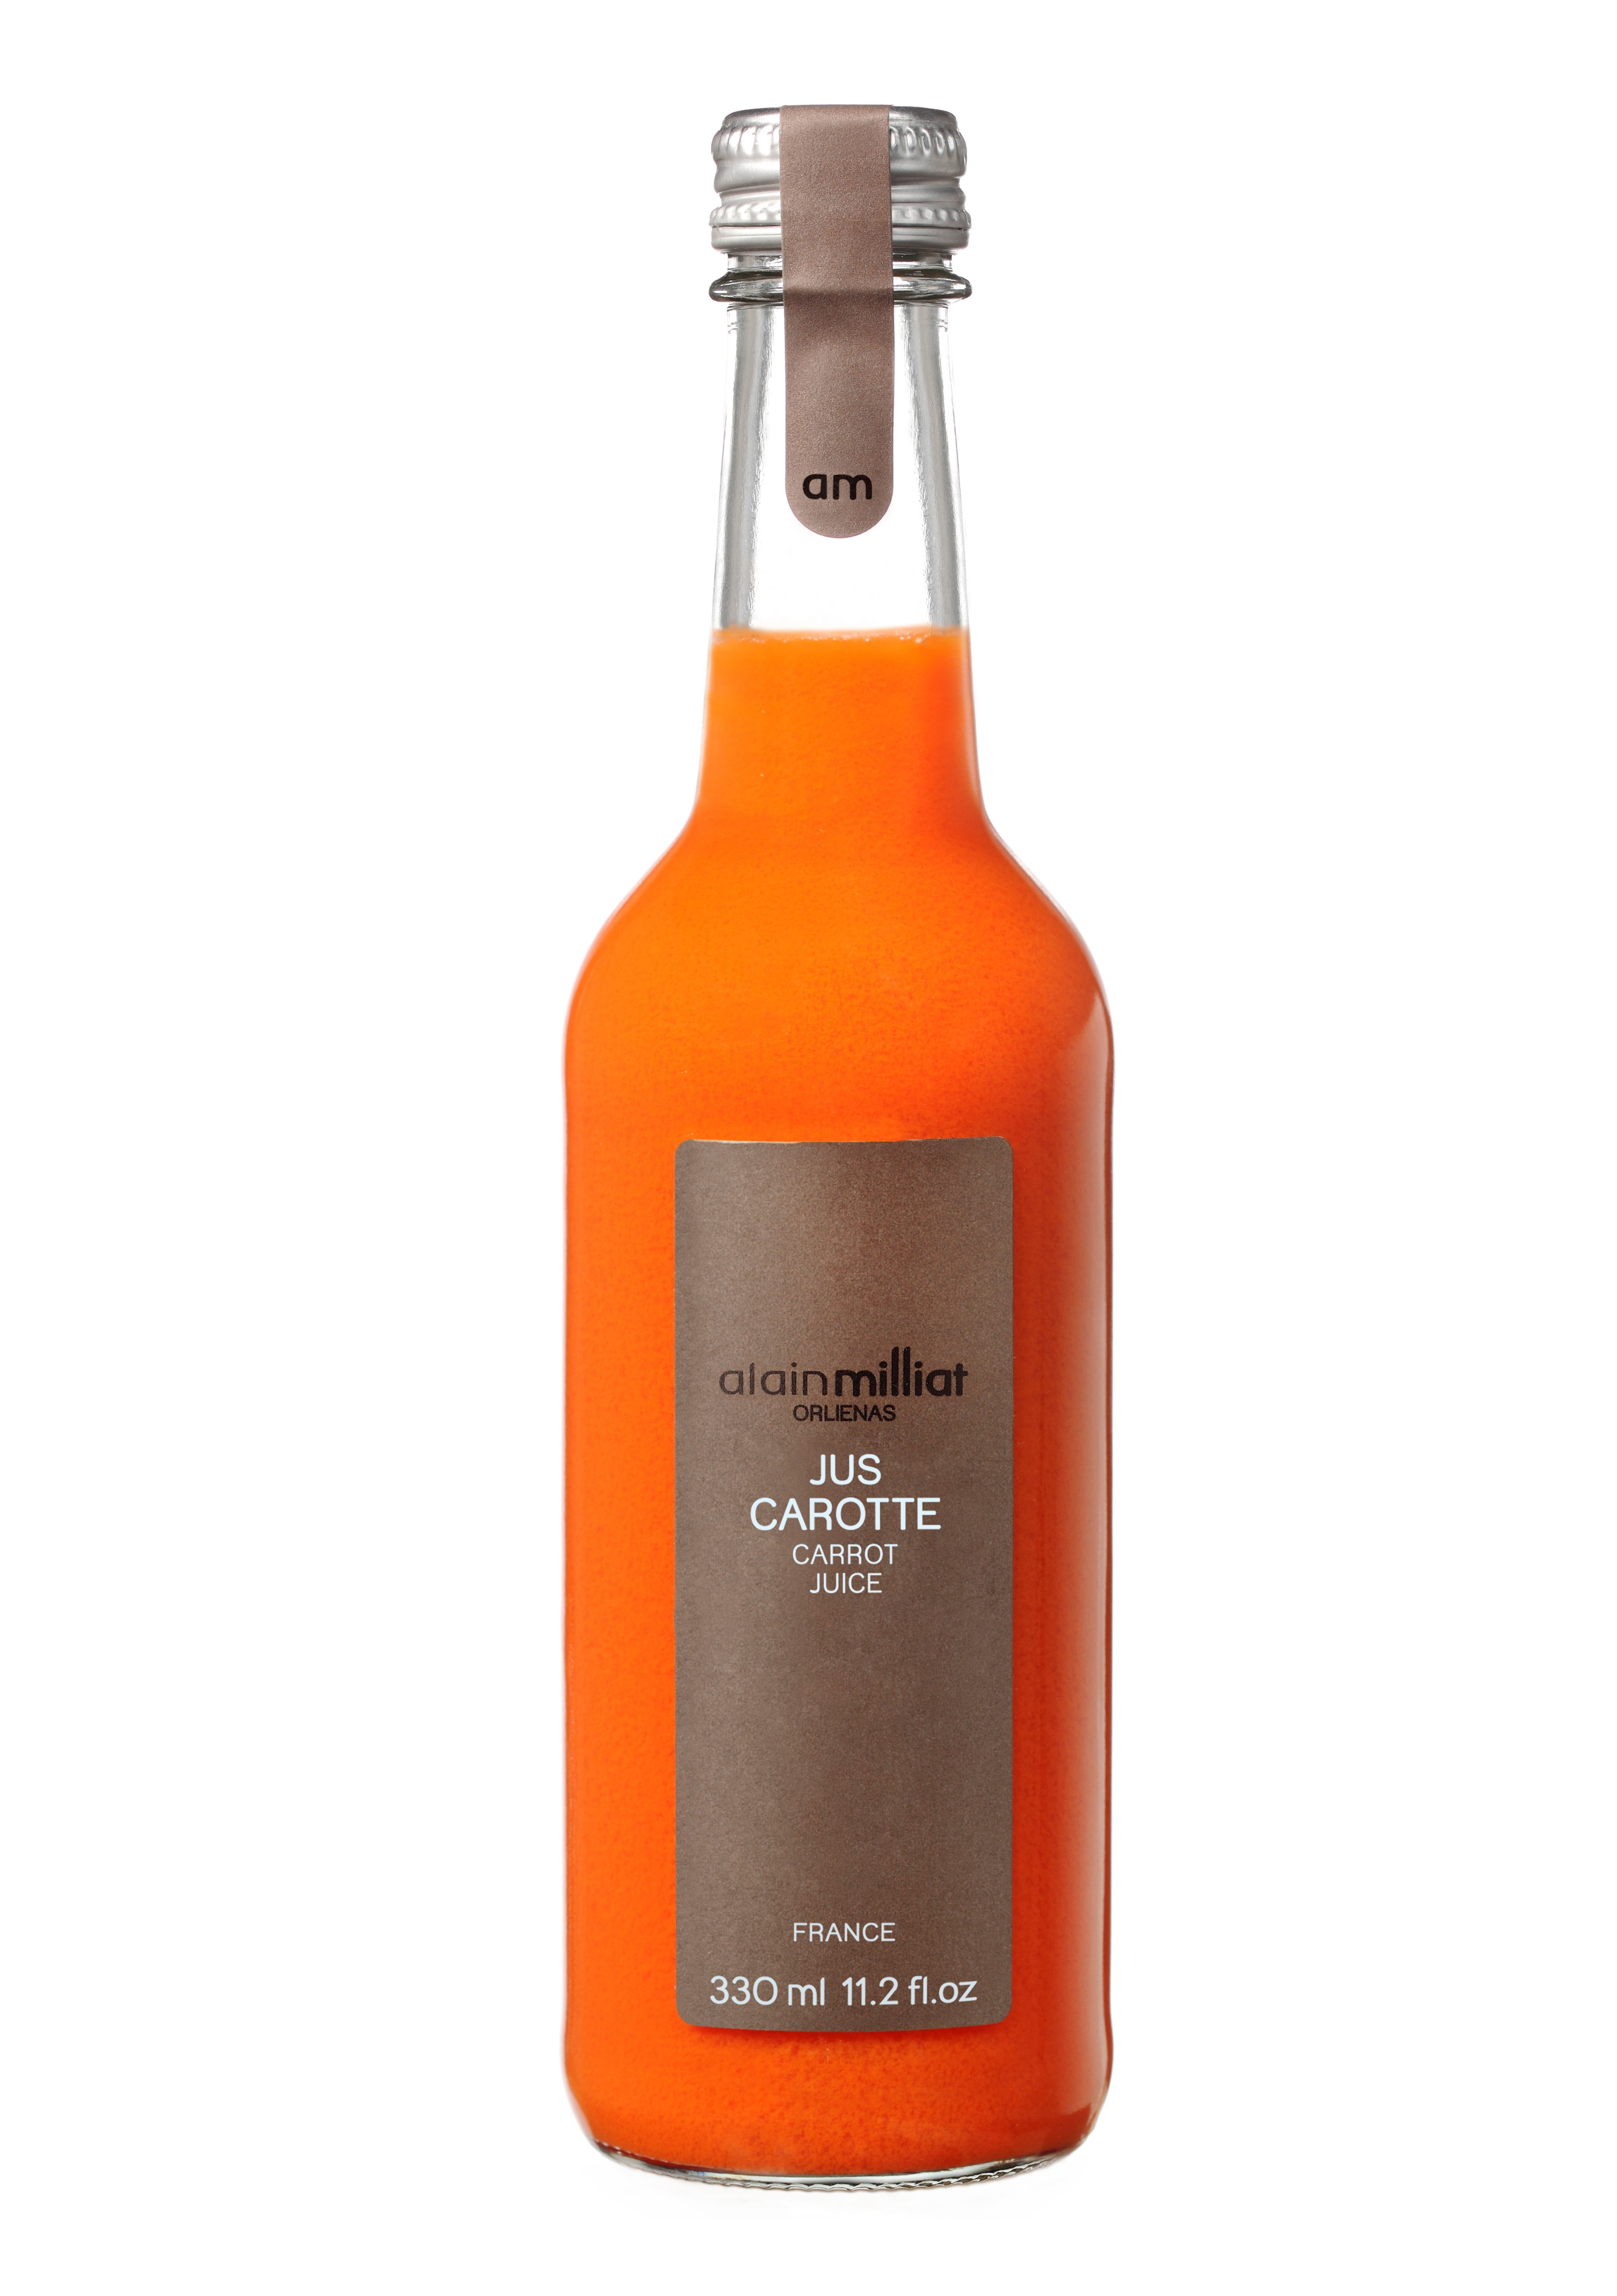 Jus Carotte, Alain Milliat (33 cl)